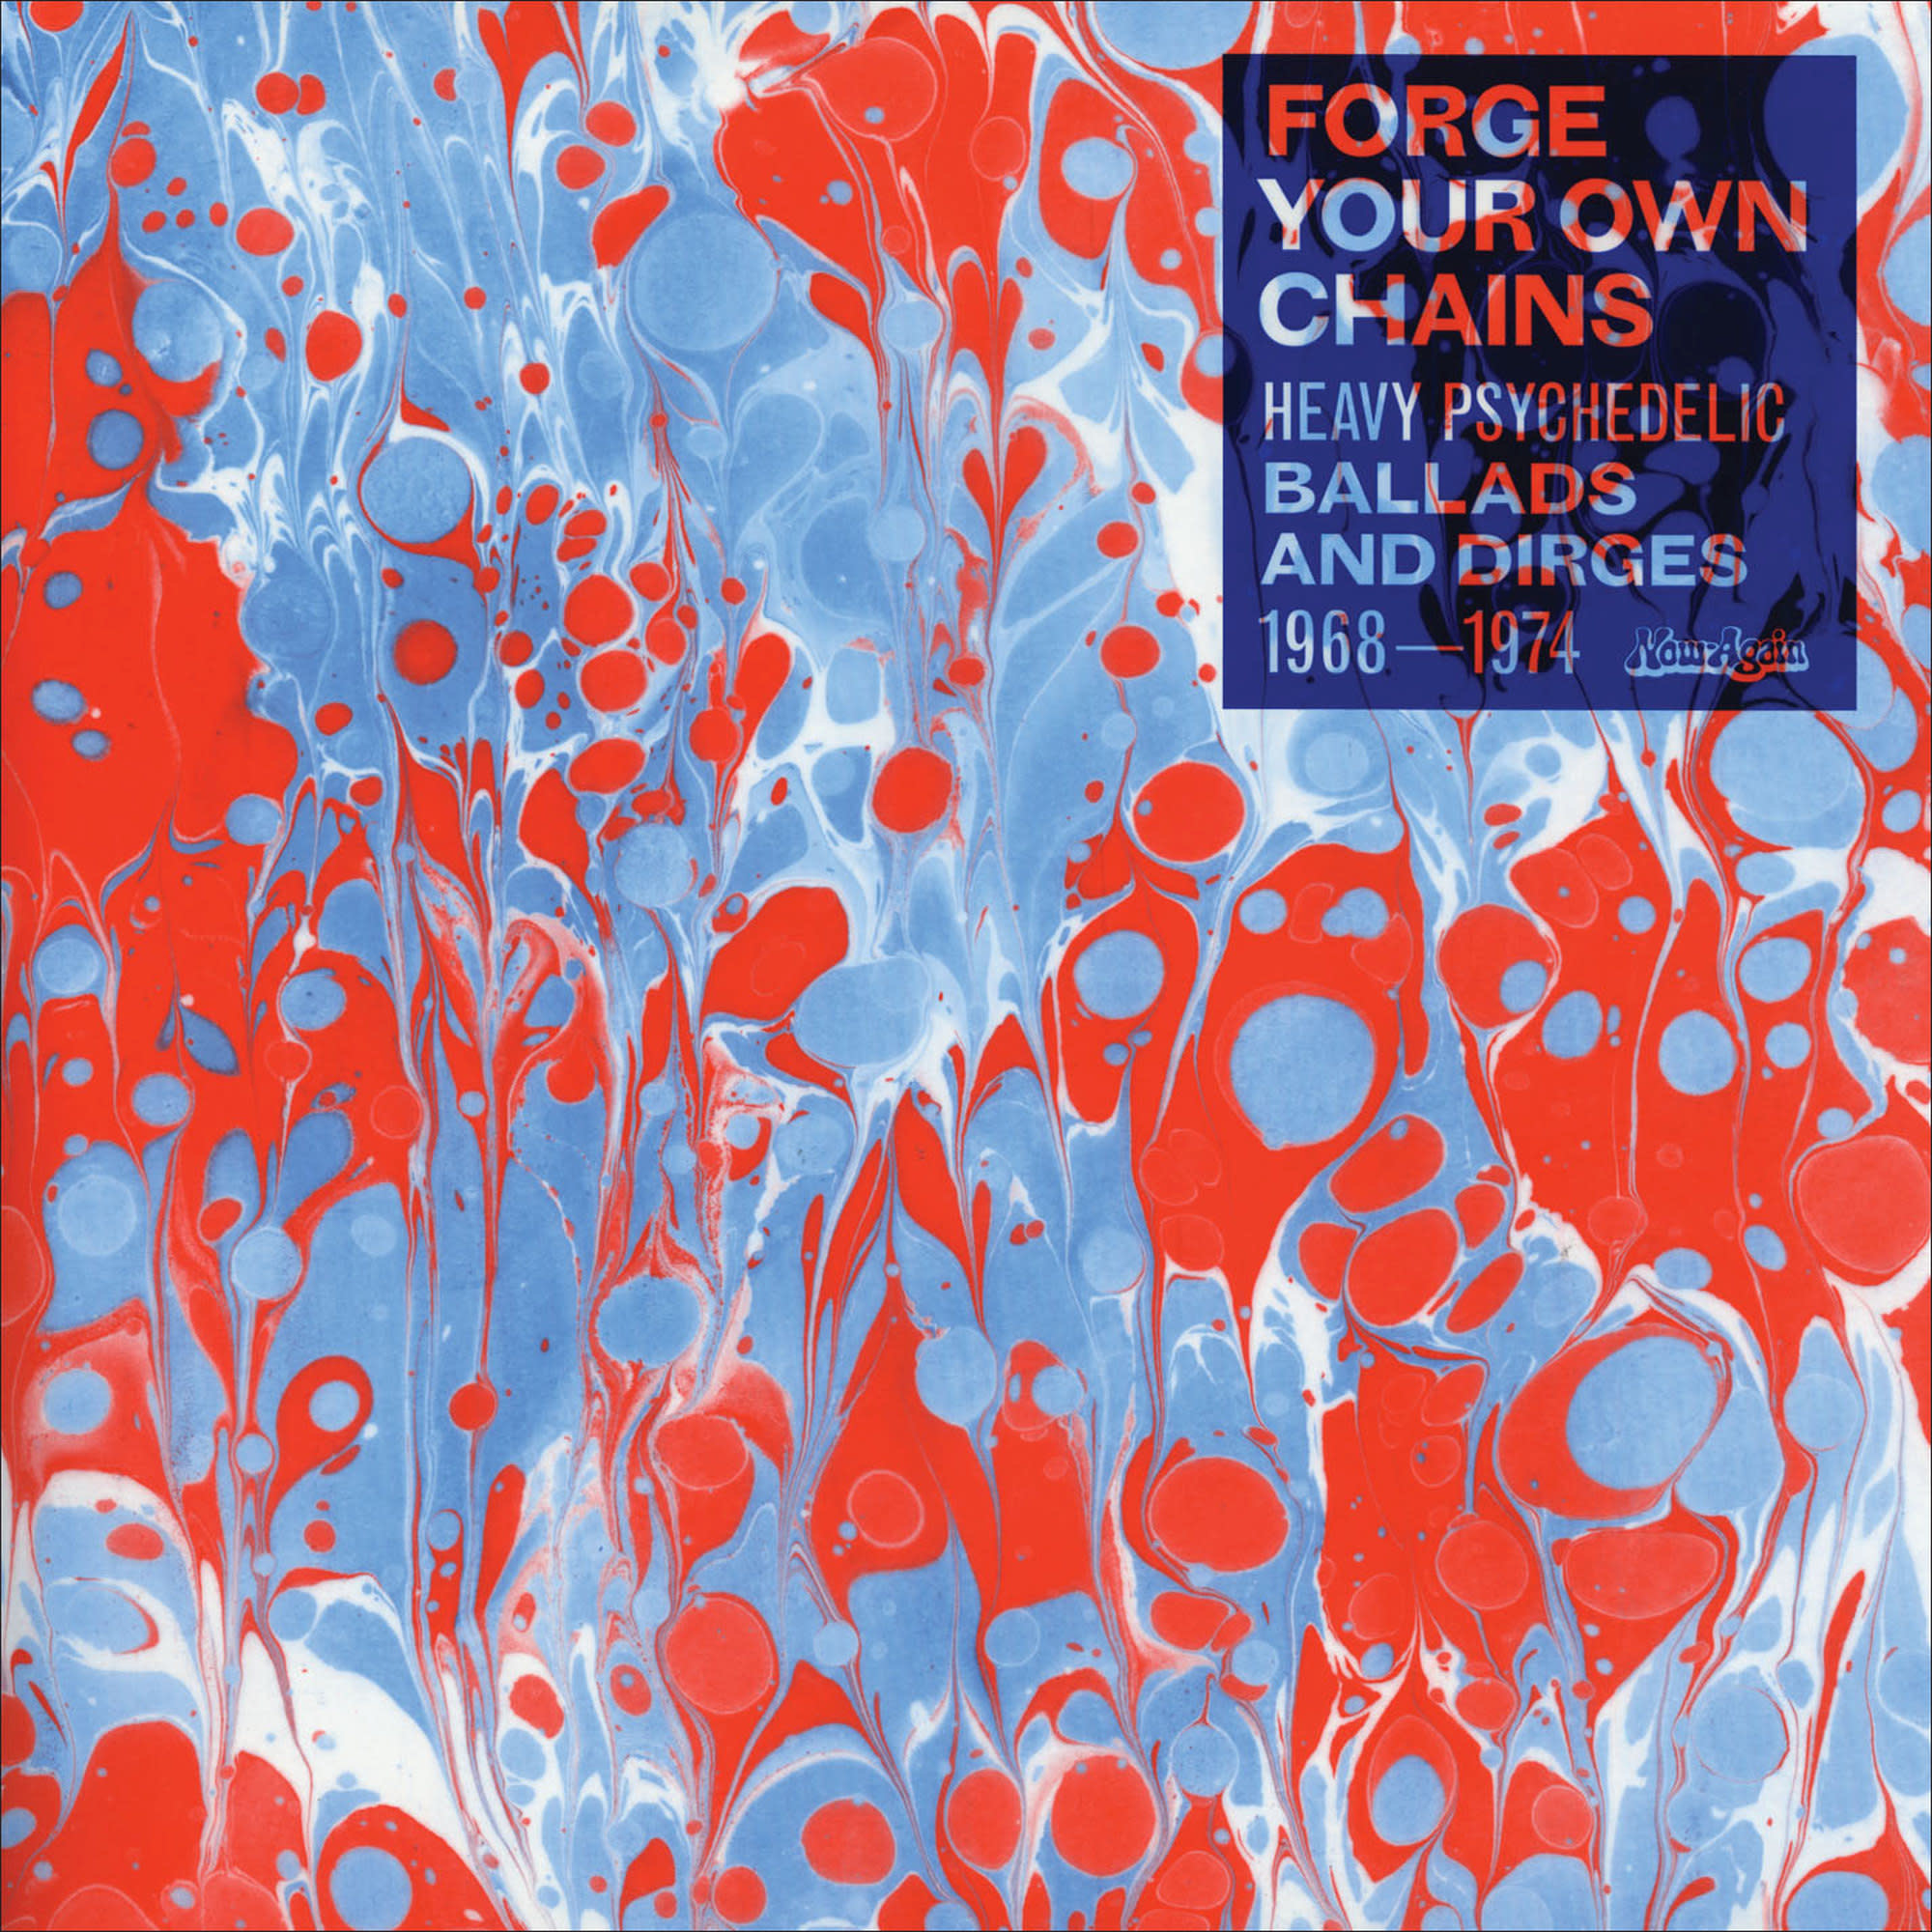 Now-Again Records Various - Forge Your Own Chains (Heavy Psychedelic Ballads And Dirges 1968-1974)